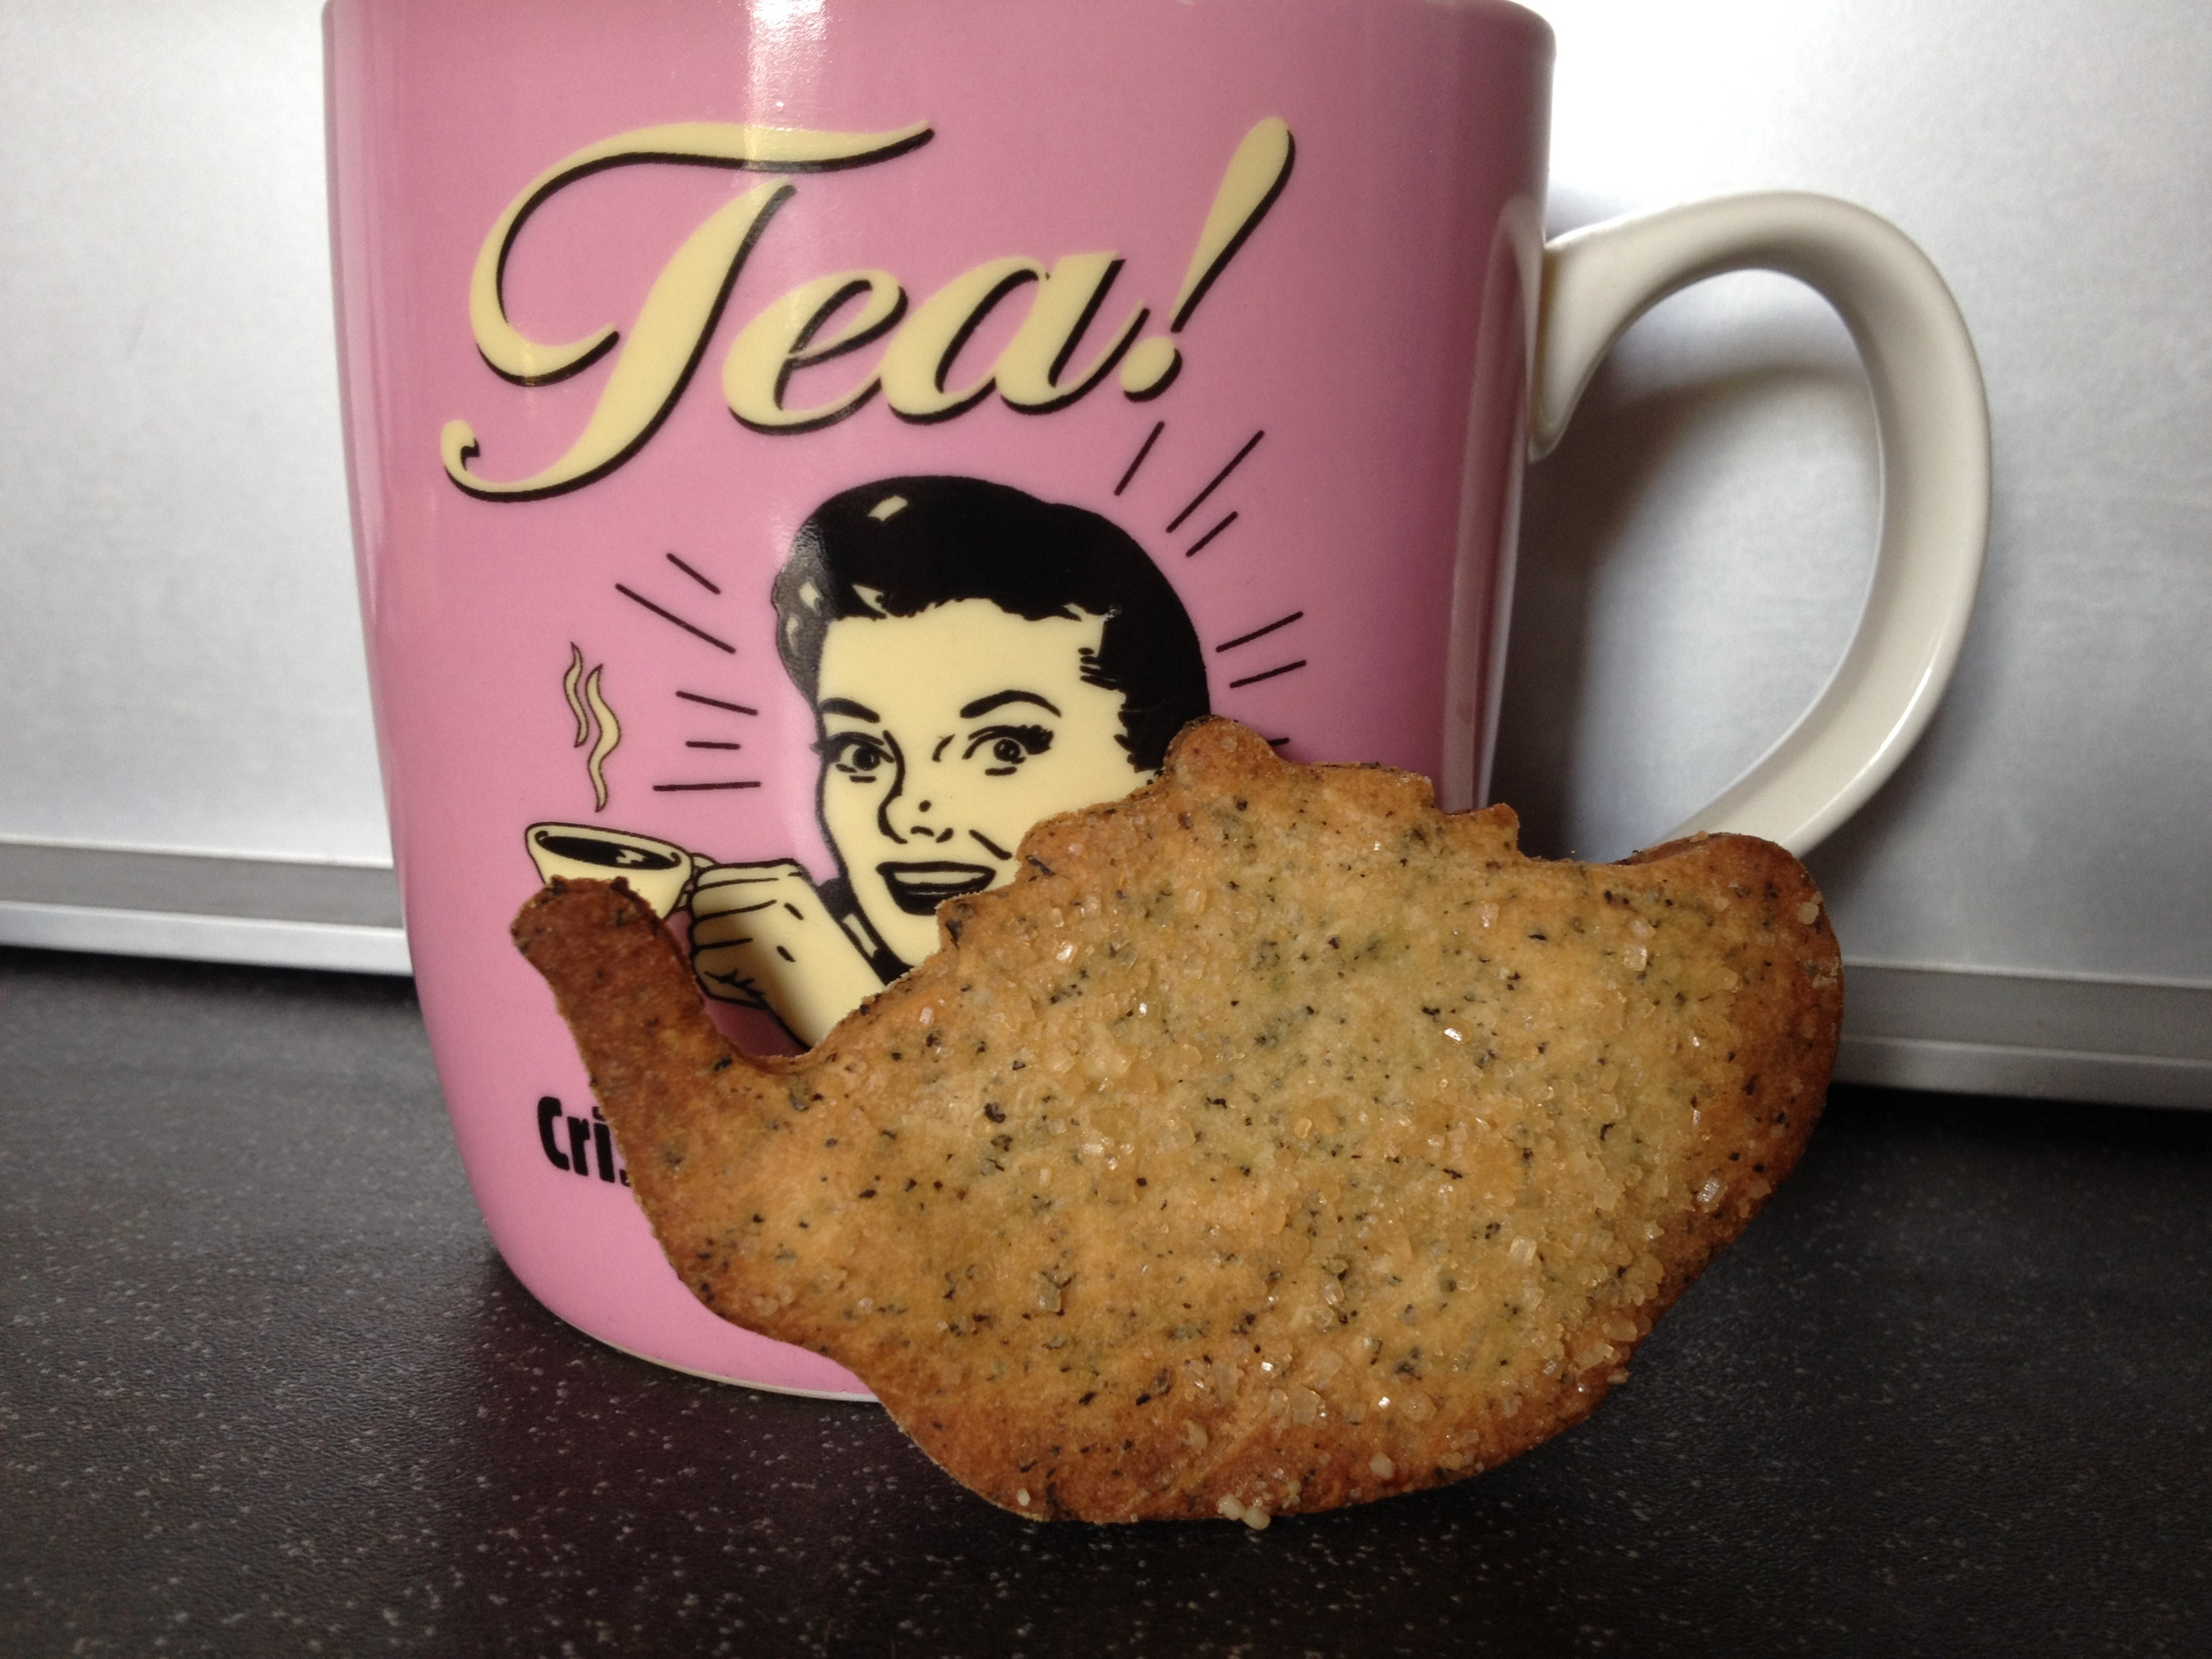 Lady Grey biscuits